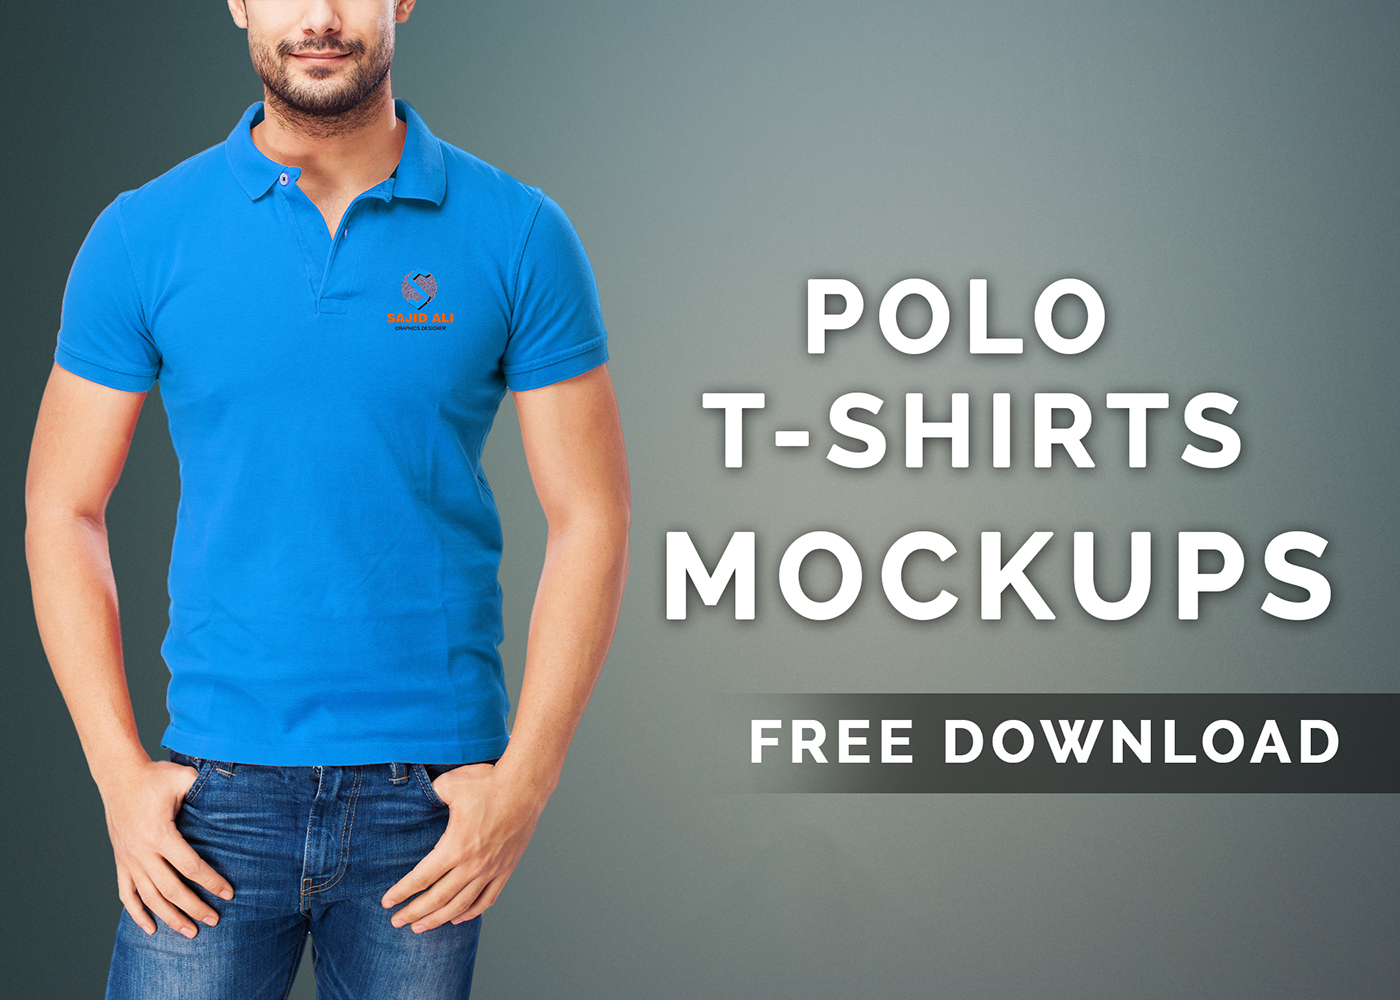 Polo t shirts mock up free download on behance for Free polo shirt mockup